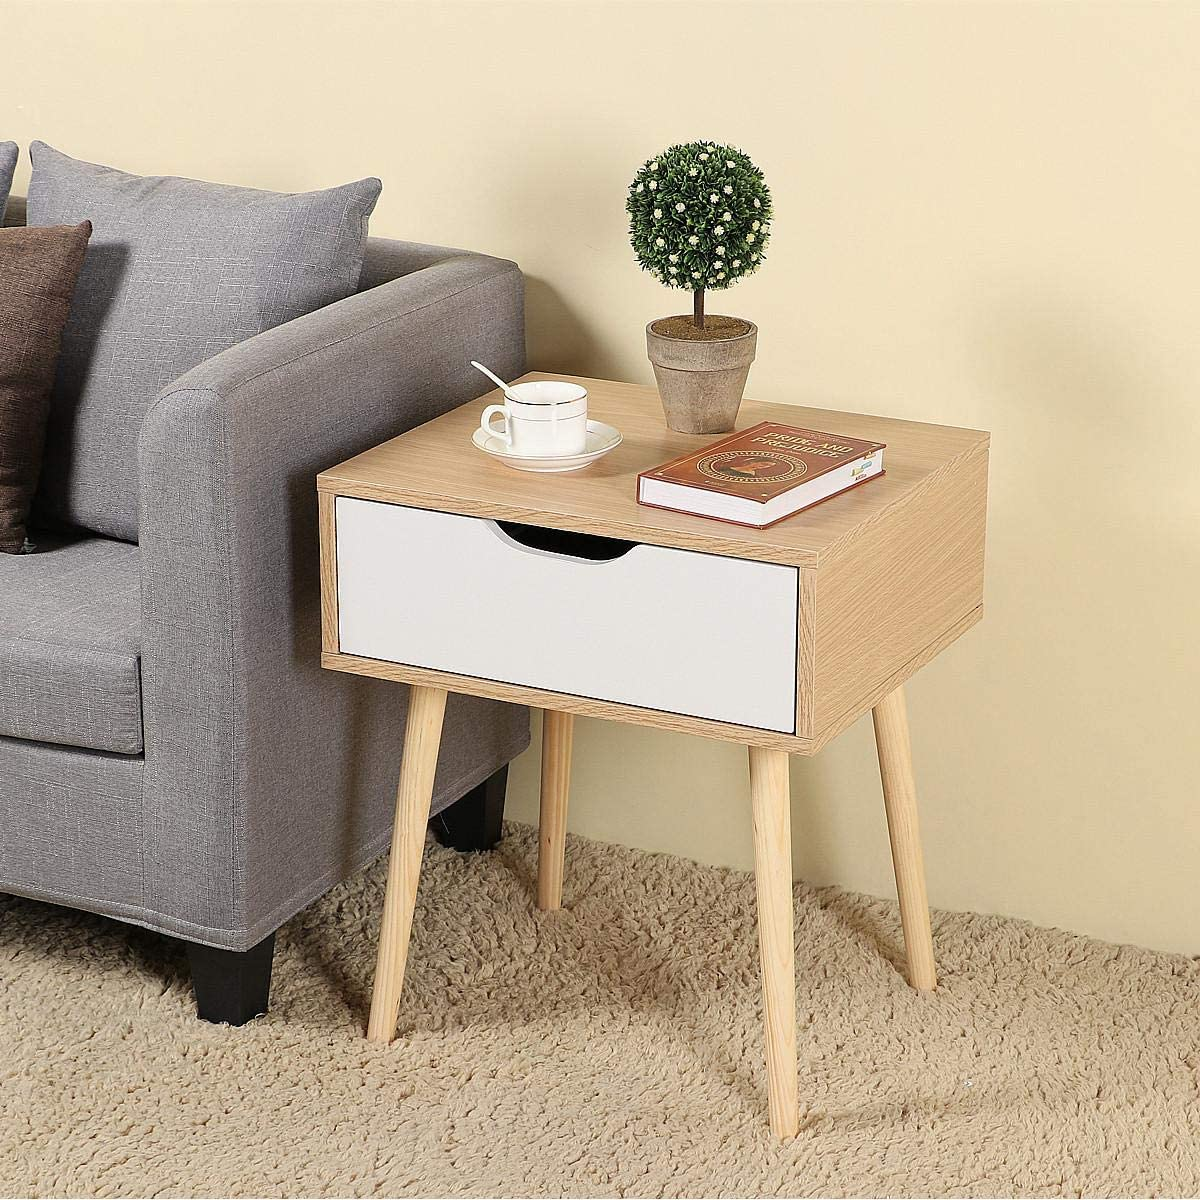 Topeakmart Sofa Side End Table Nightstand Bedside Table with Storage Drawer Solid Wood Legs